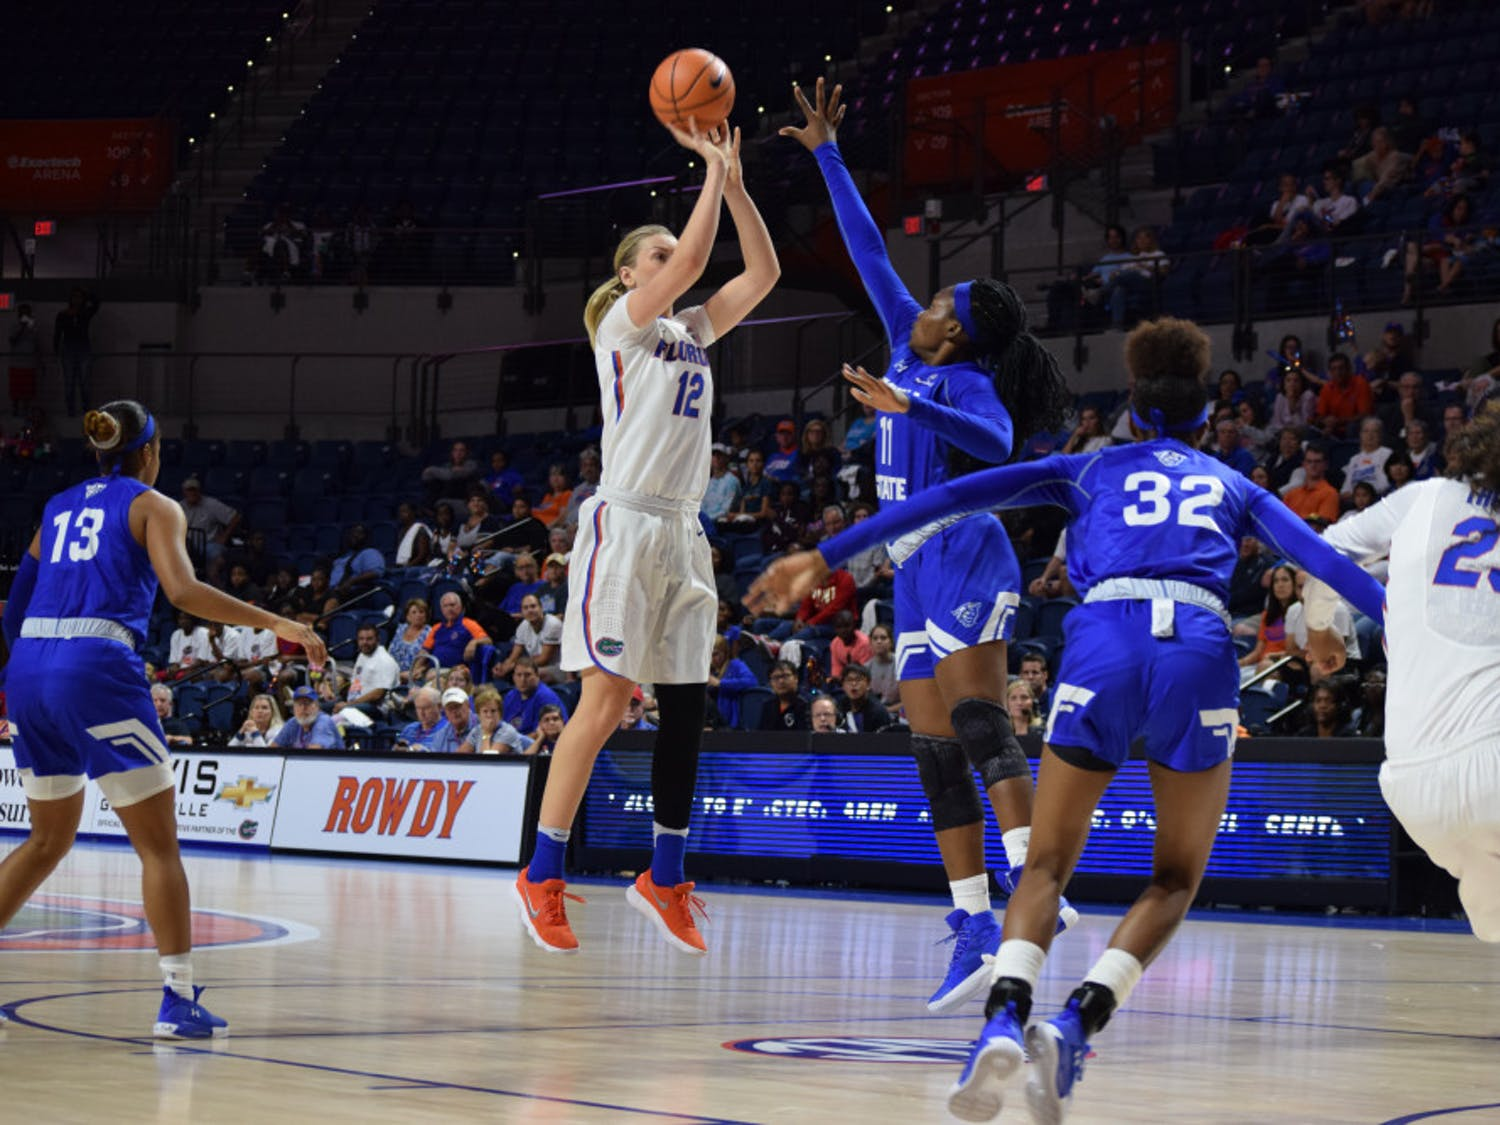 UF guard Paulina Hersler converted 3-of-5 attempts from beyond the arc in Florida's 82-66 against Georgia State on Saturday.